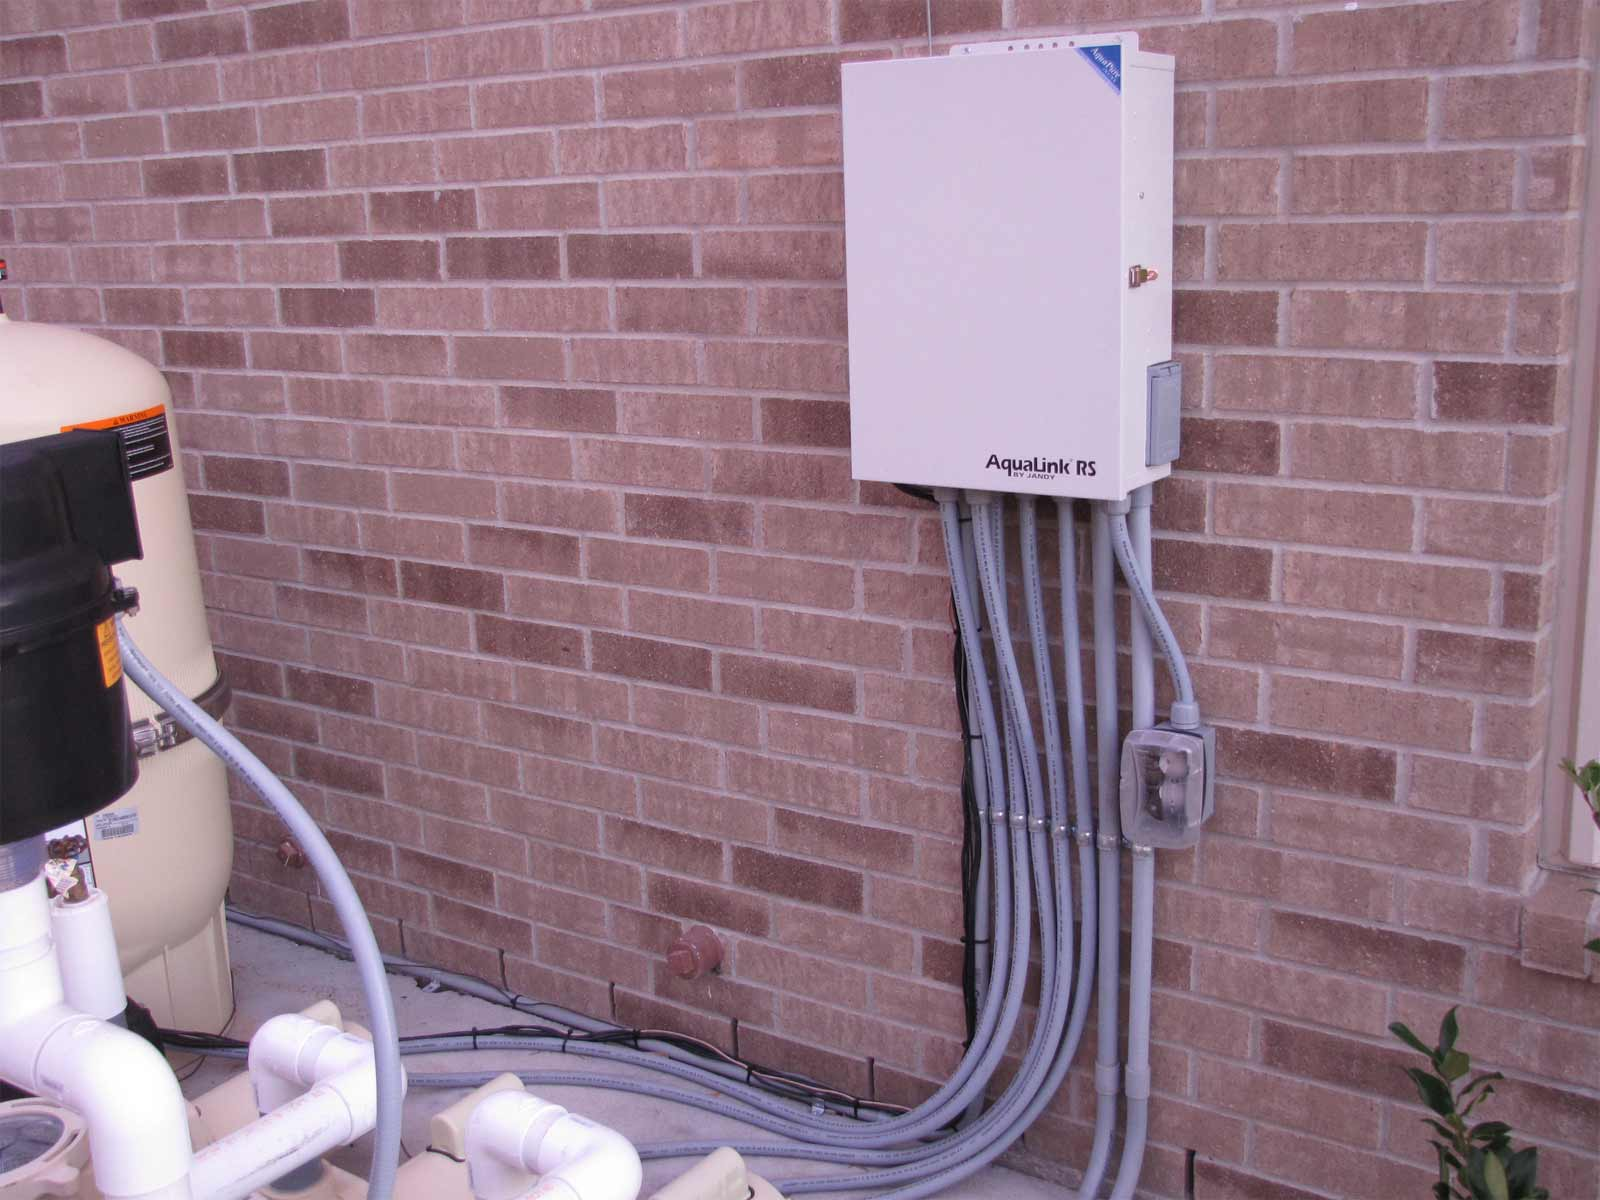 Swimming Pool Electrician : Building your own swimming pool in katy texas aaron